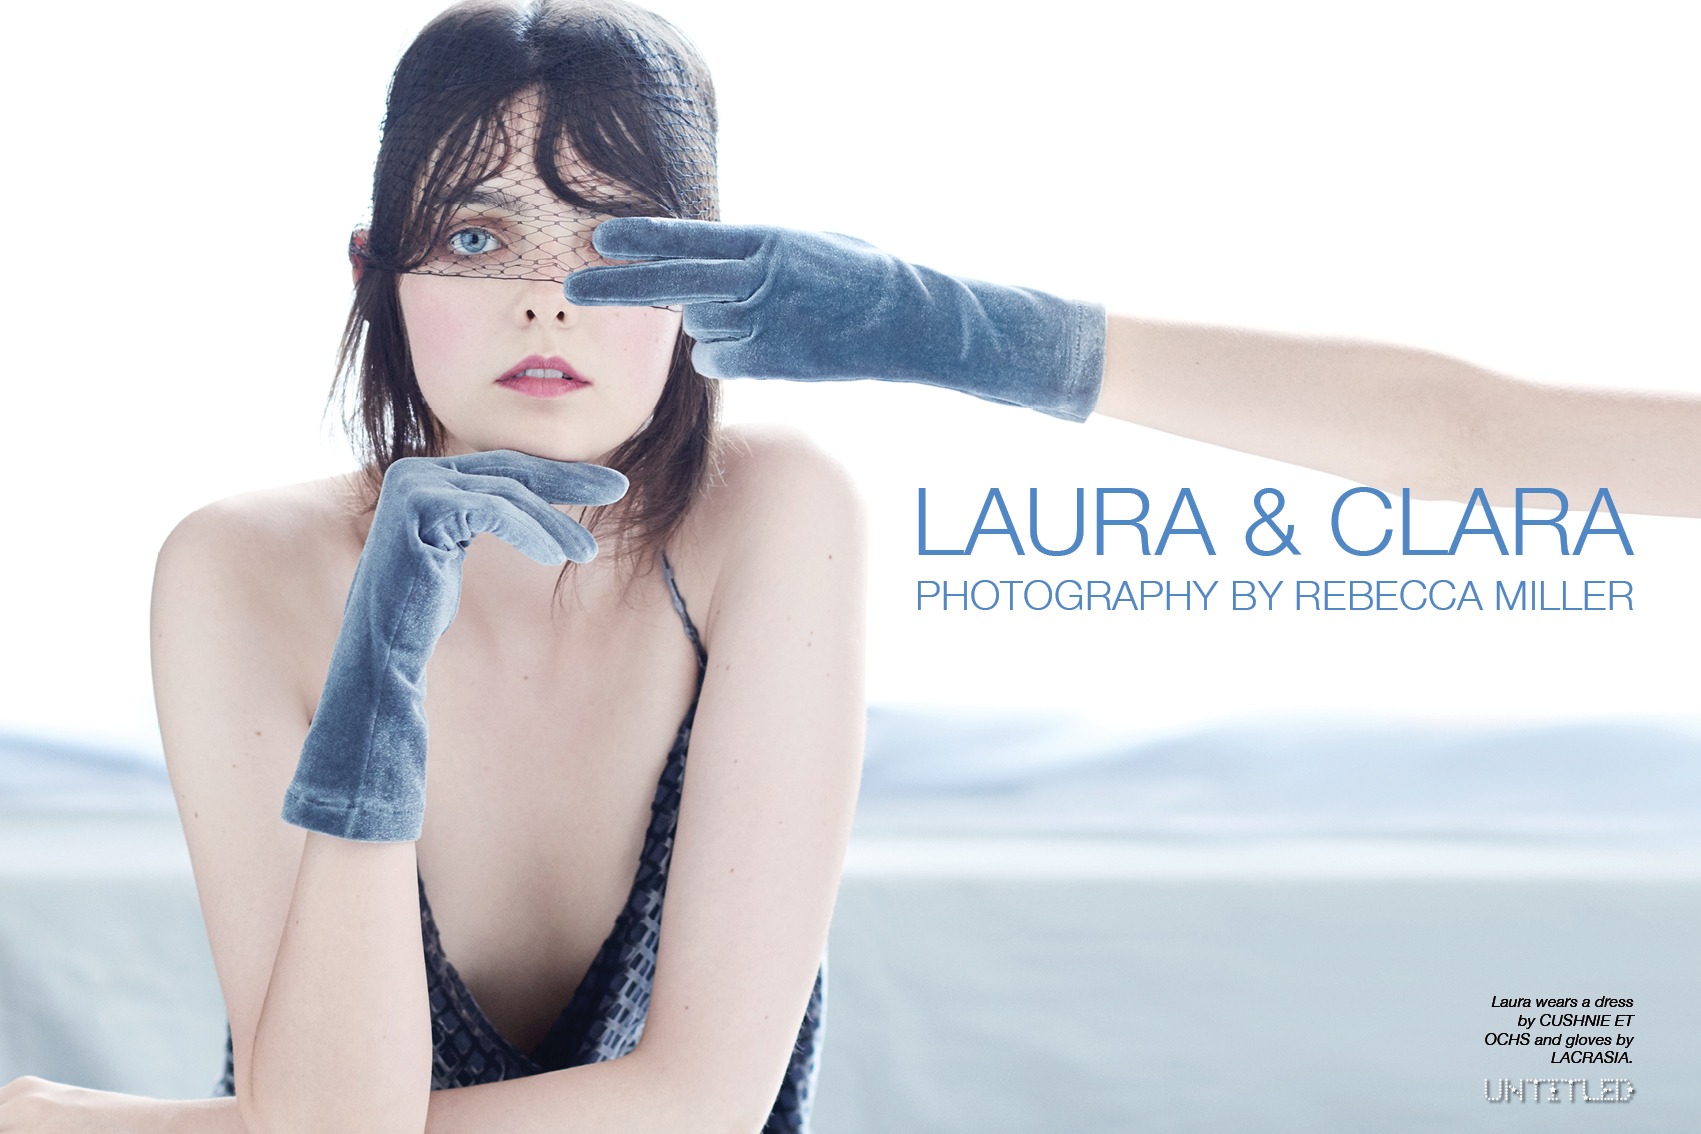 Laura & Clara - The Untitled Magazine - Photography by Rebecca Miller